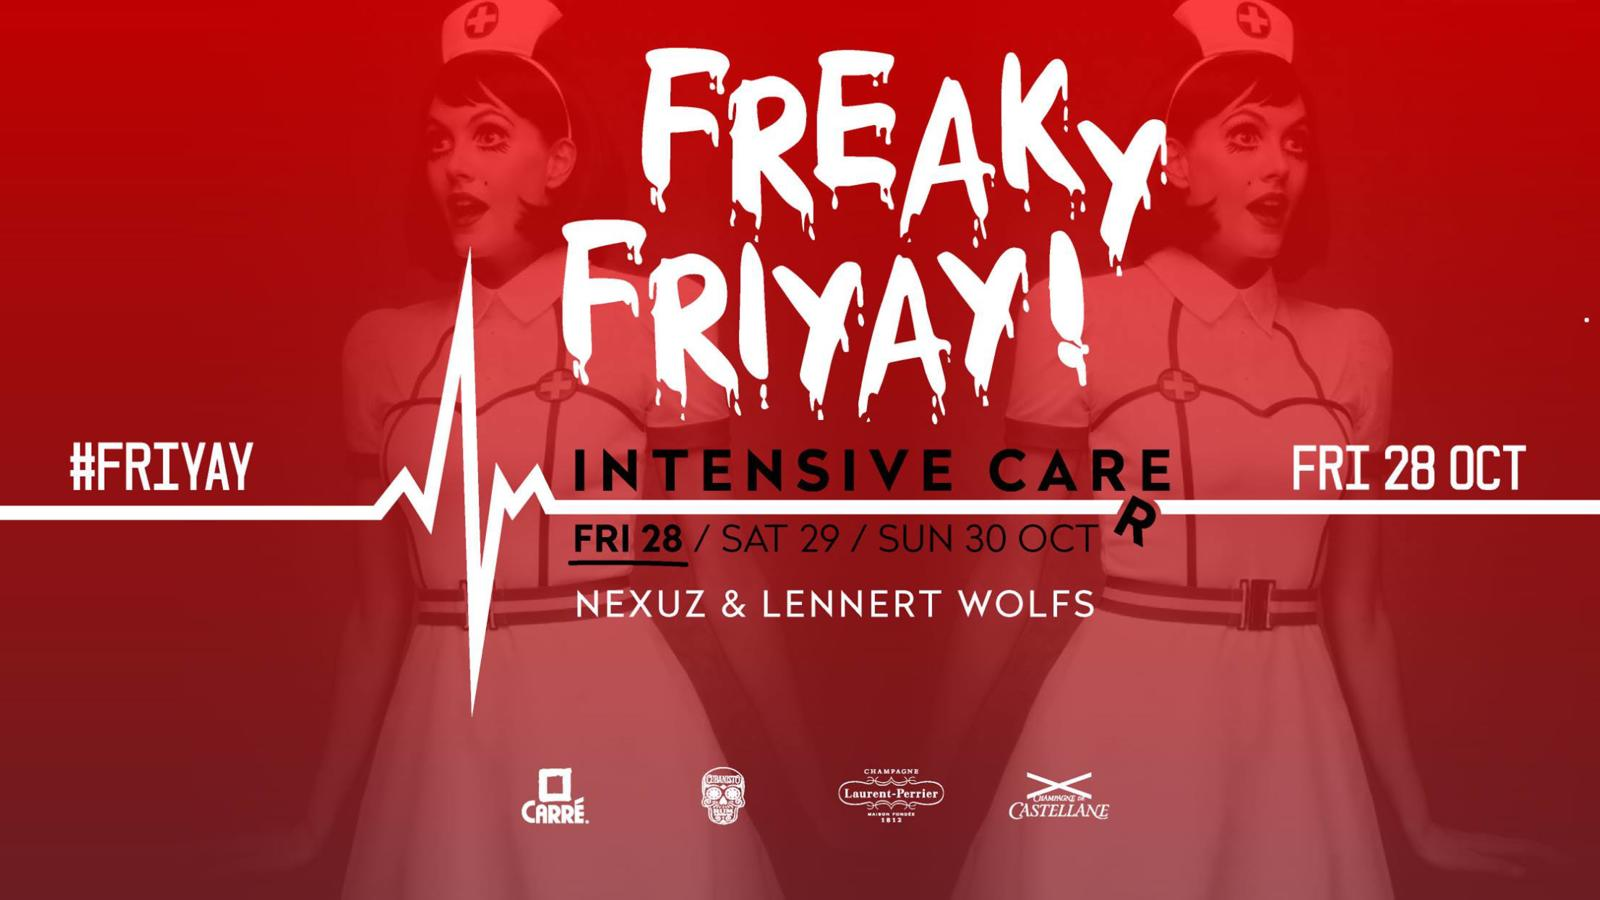 Intensive carré weekend freaky friyay 28 oktober